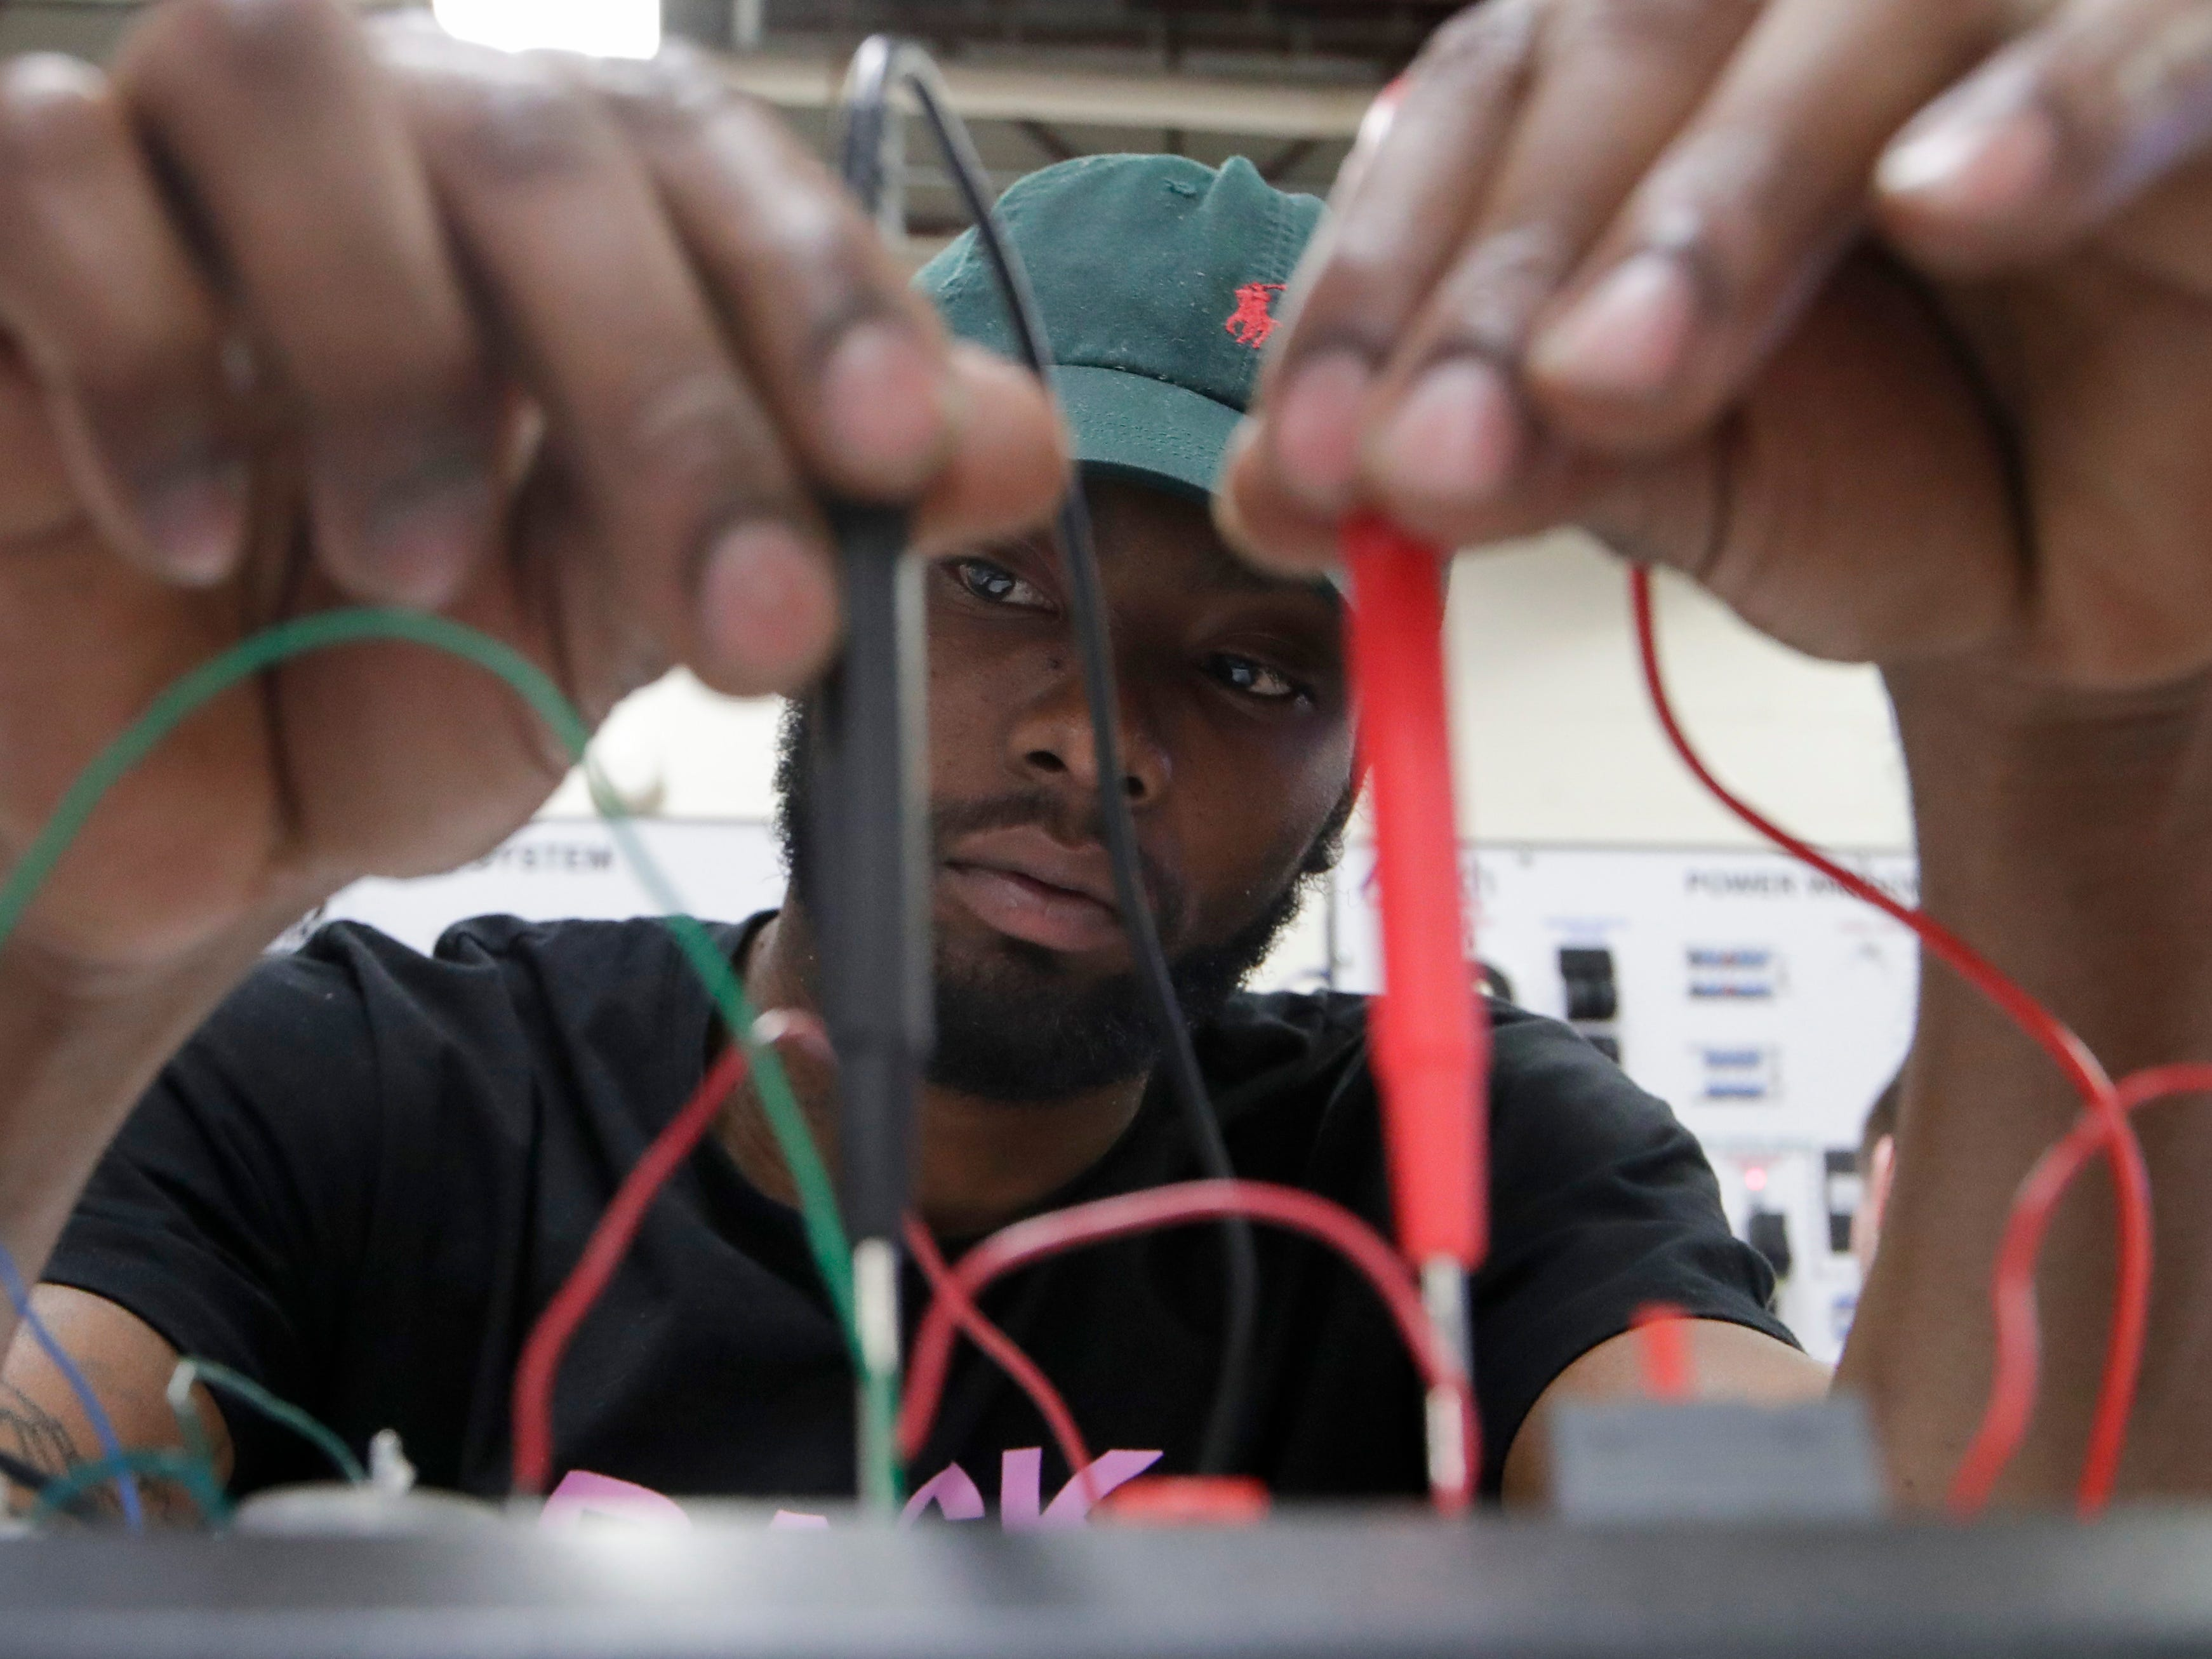 Automotive service technology program student Lothario Washington uses a circuits model trainer Wednesday, Jan. 9, 2019 at Lively Technical Center which has been approved by the Leon County School Board to change it's name to Lively Technical College.